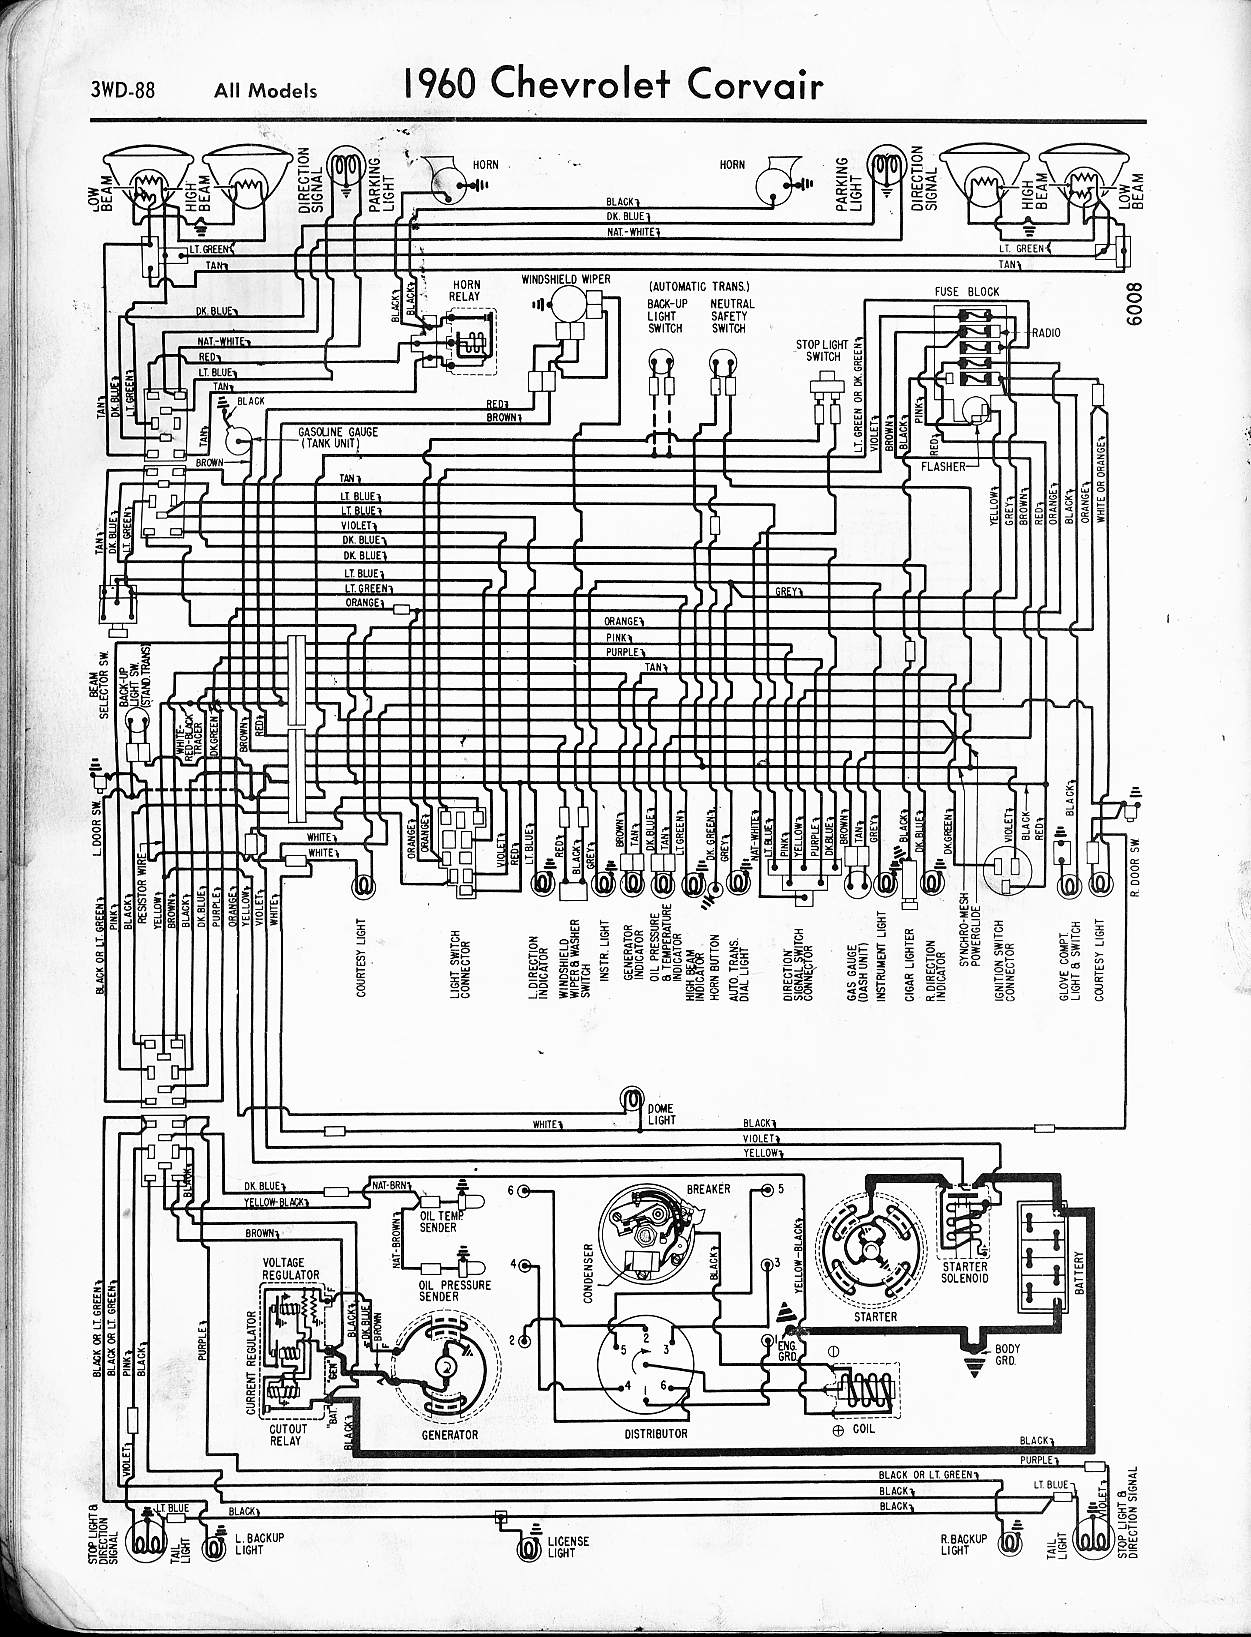 57 65 Chevy Wiring Diagrams 1960 Triumph Diagram Corvair